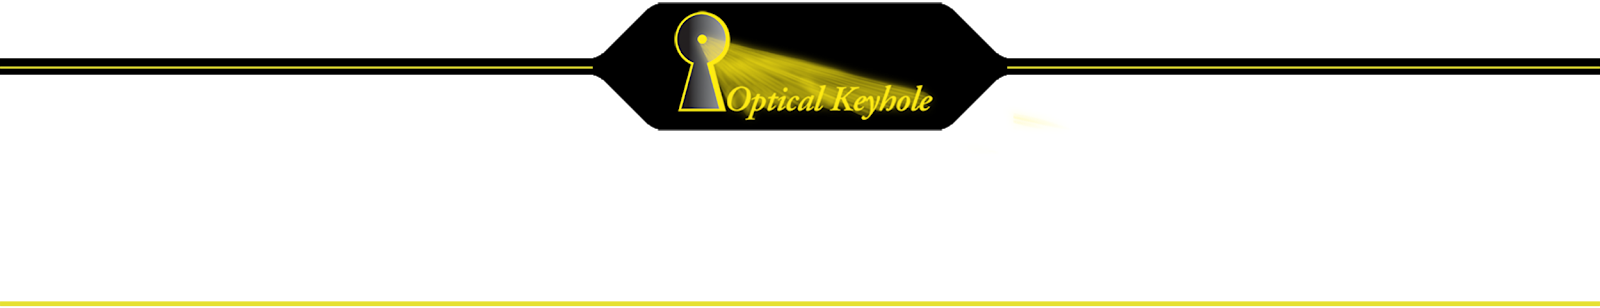 Optical Keyhole